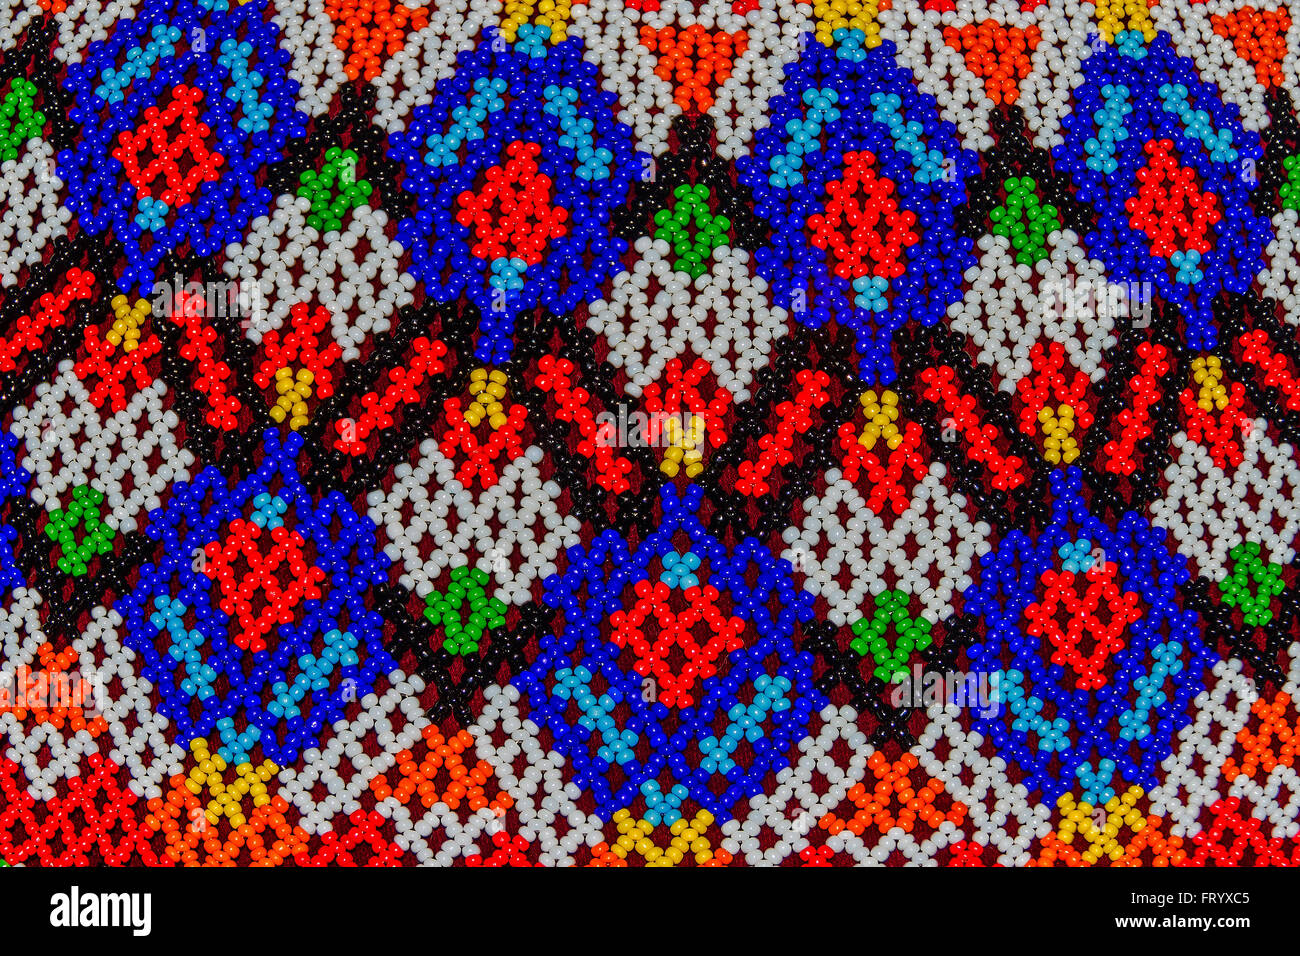 Abstract Bead Pattern From Greenland Cape Museum Oxford UK - Stock Image